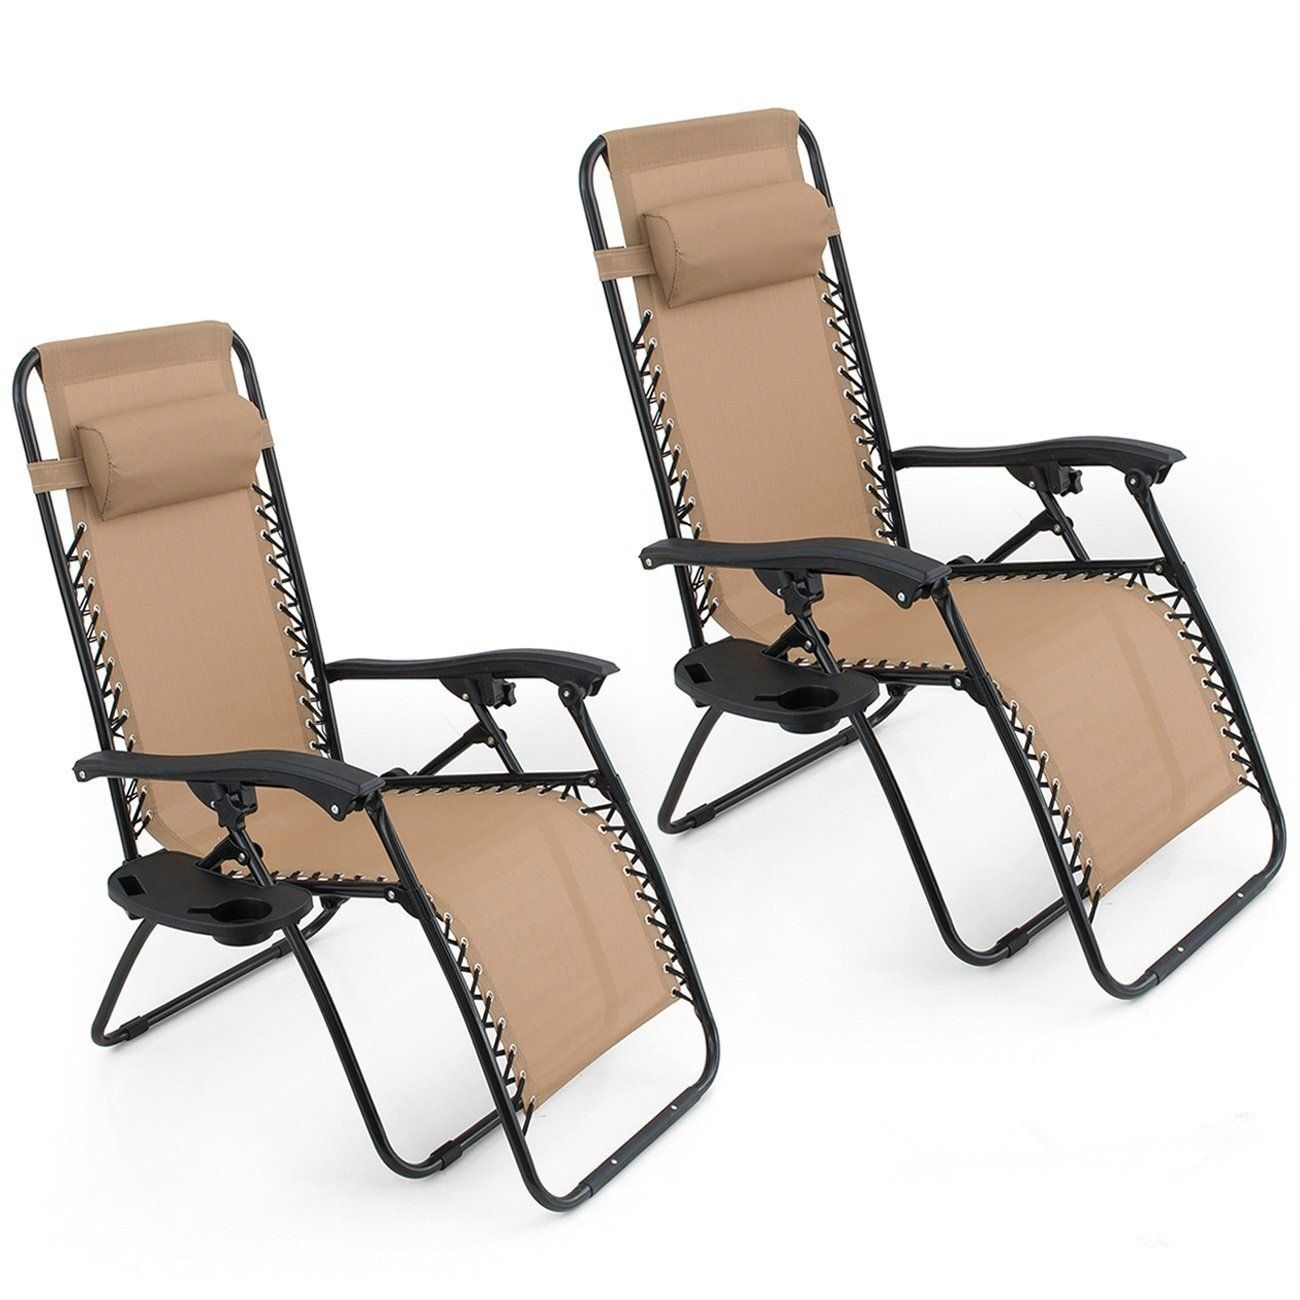 Oshion pair zero gravity chairs black lounge patio chairs outdoor